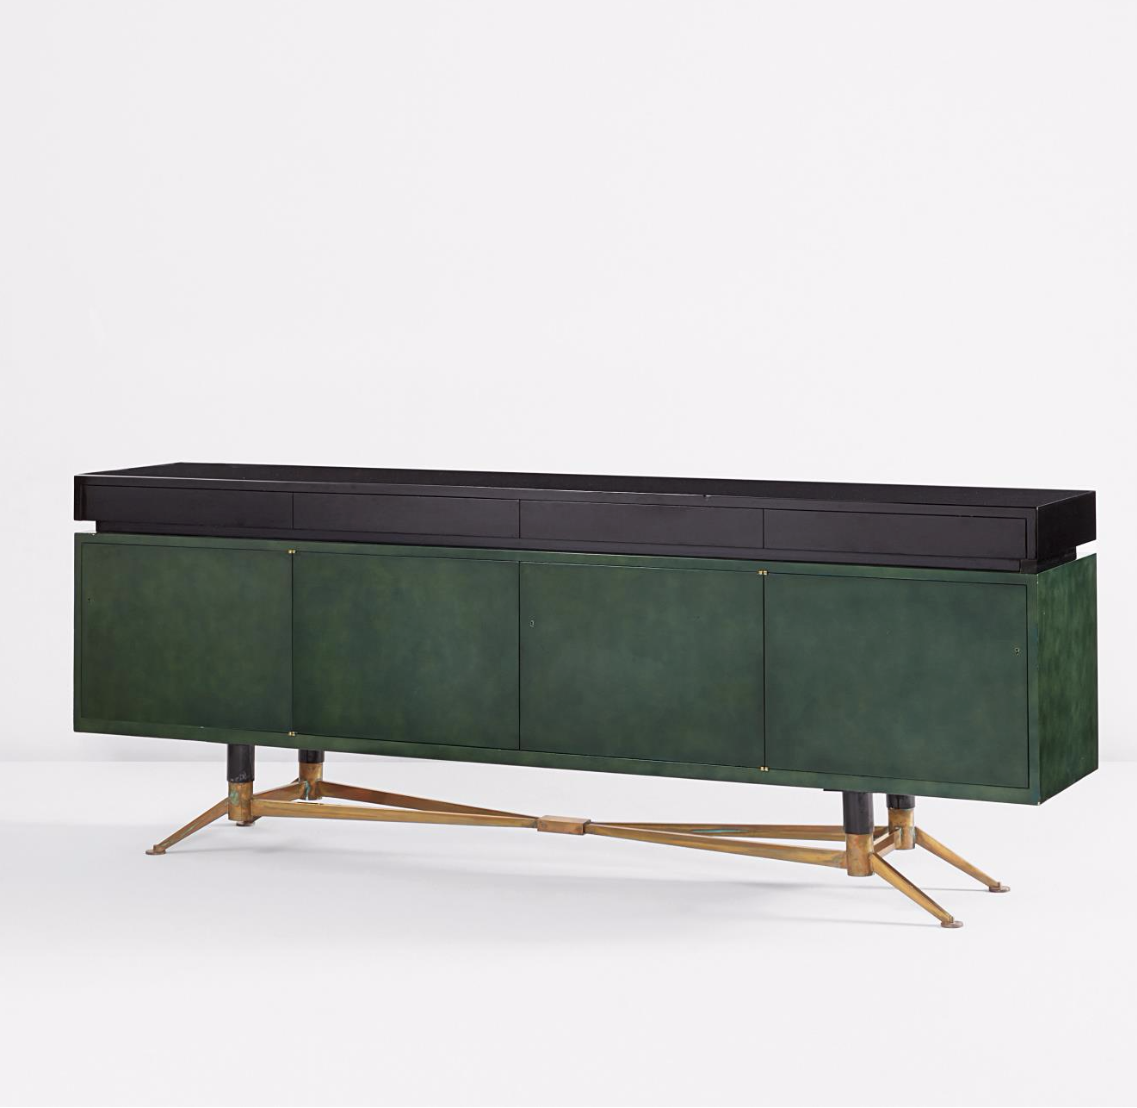 Luxus Sideboard lacquered wood bronze and steel sideboard wohndesign wohnzimmer